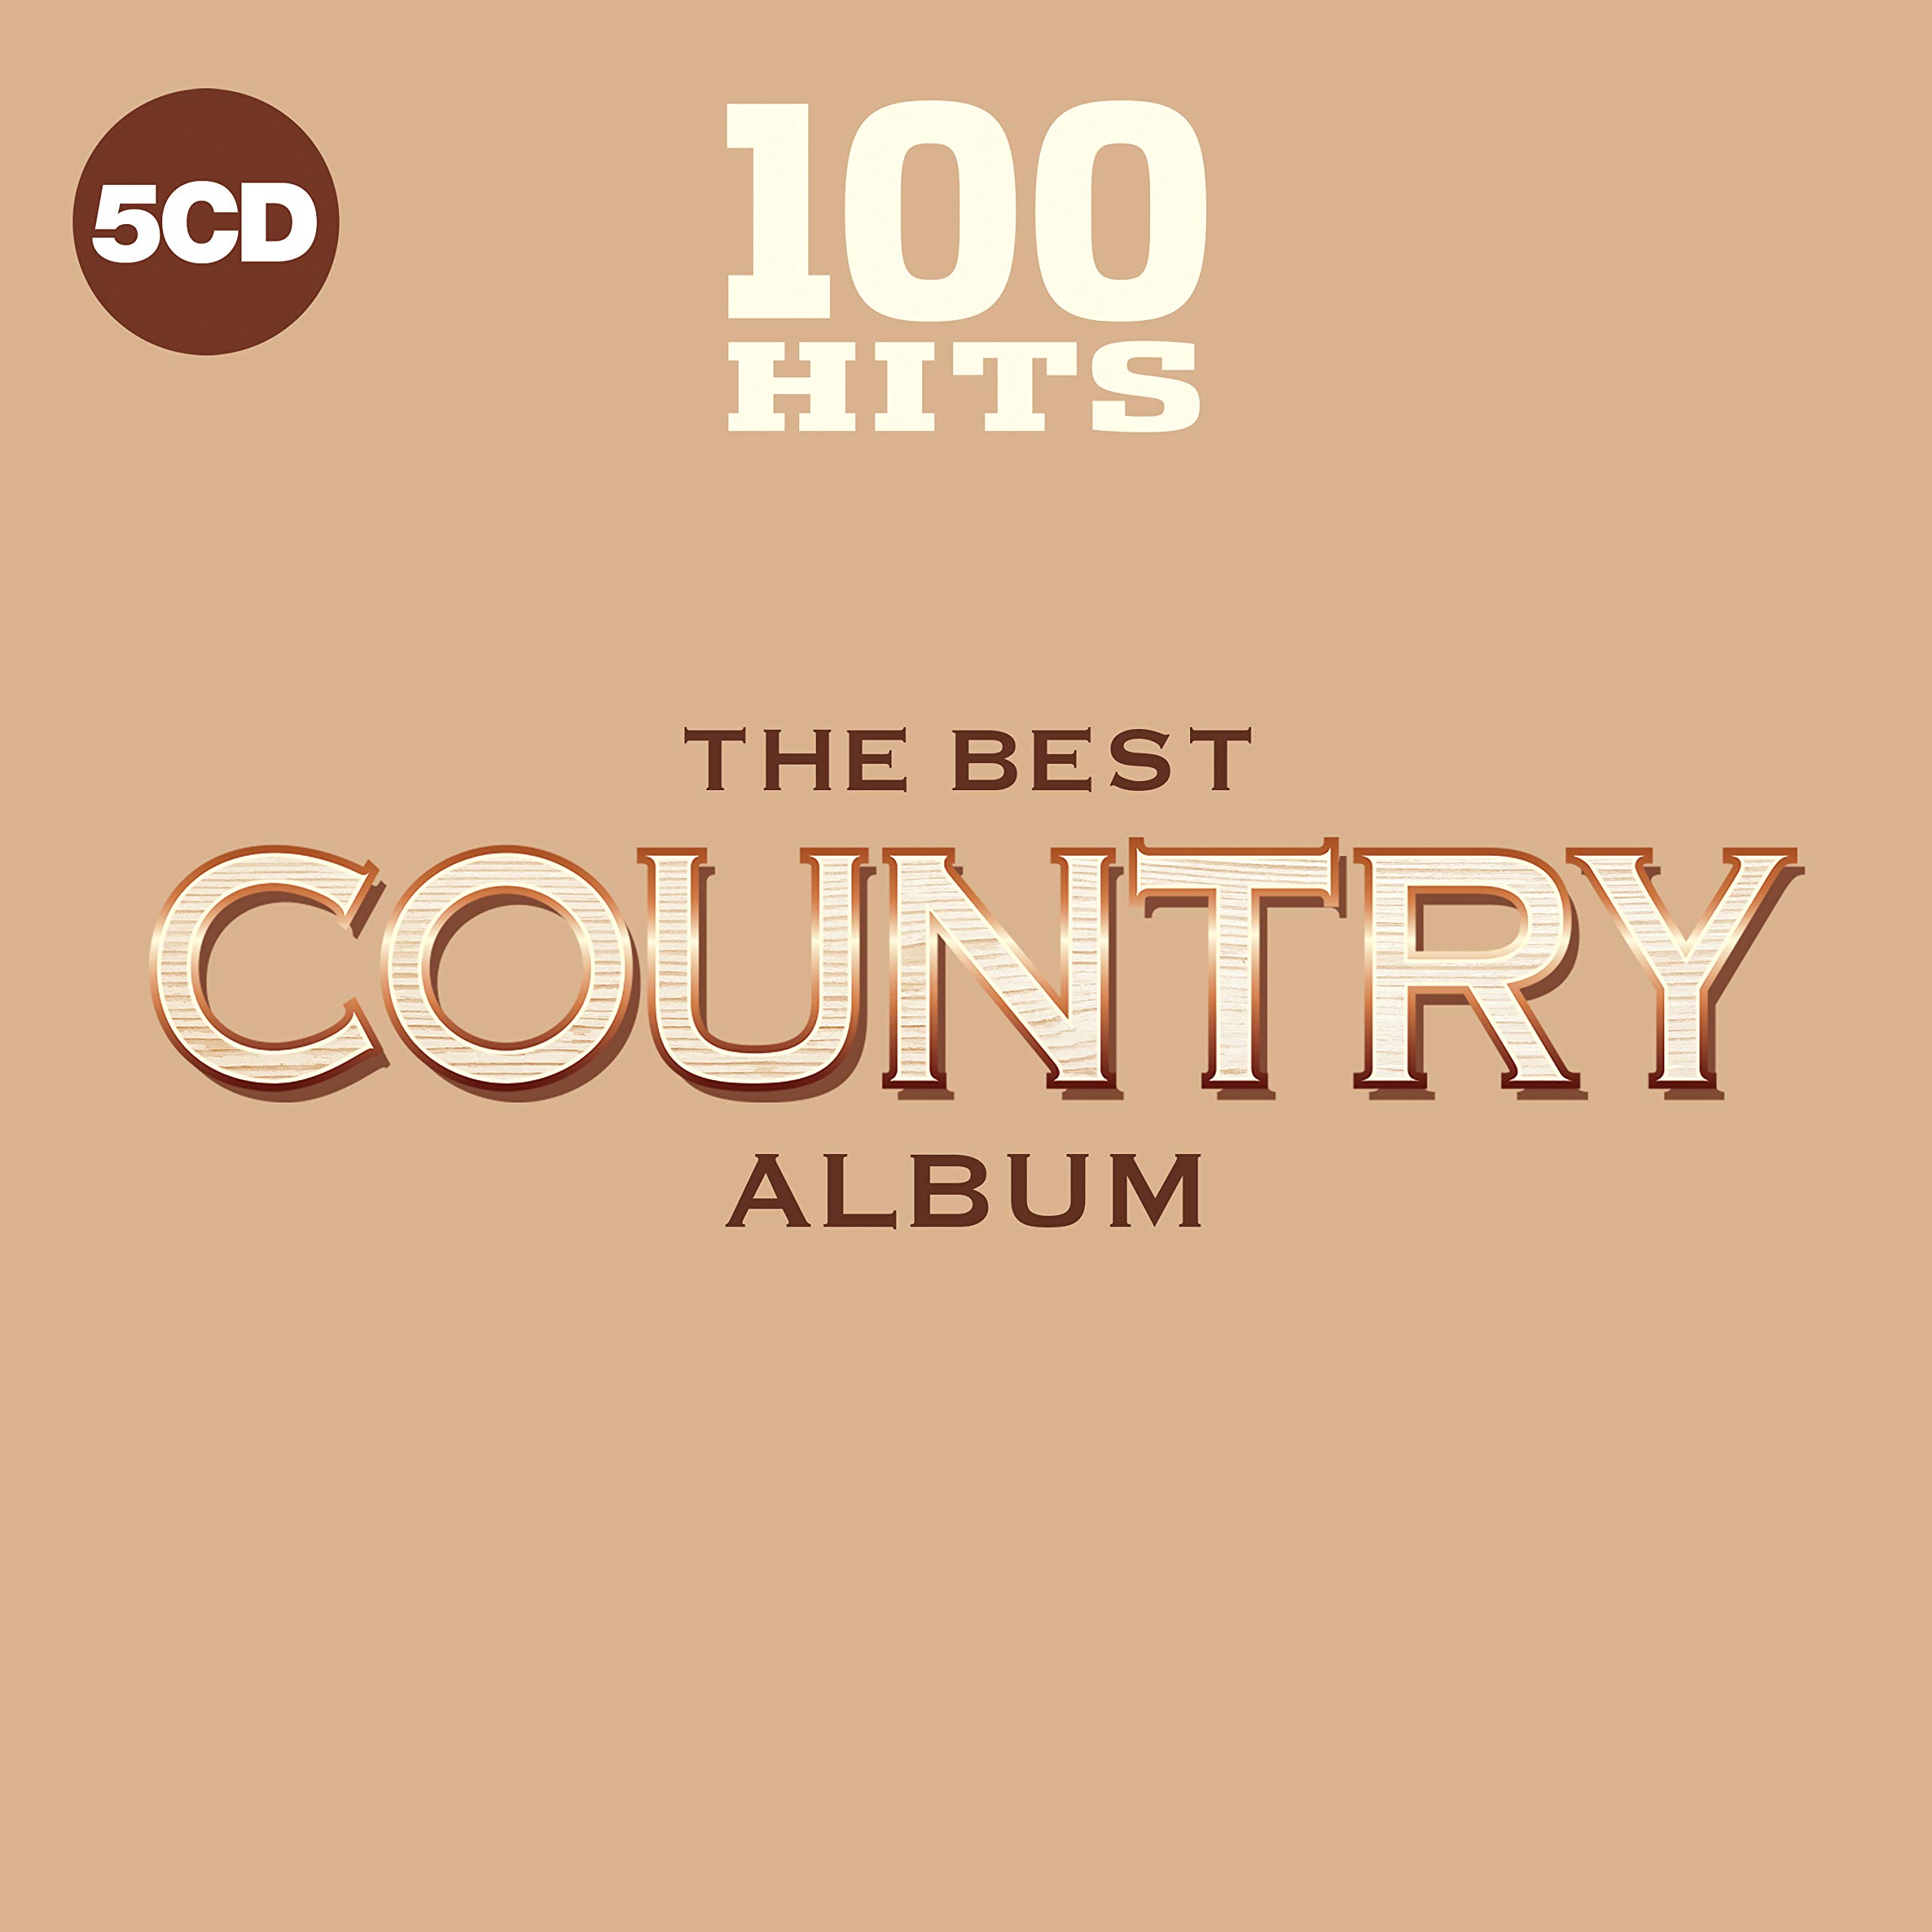 100 Hits: The Best Country Album by 100 Hits